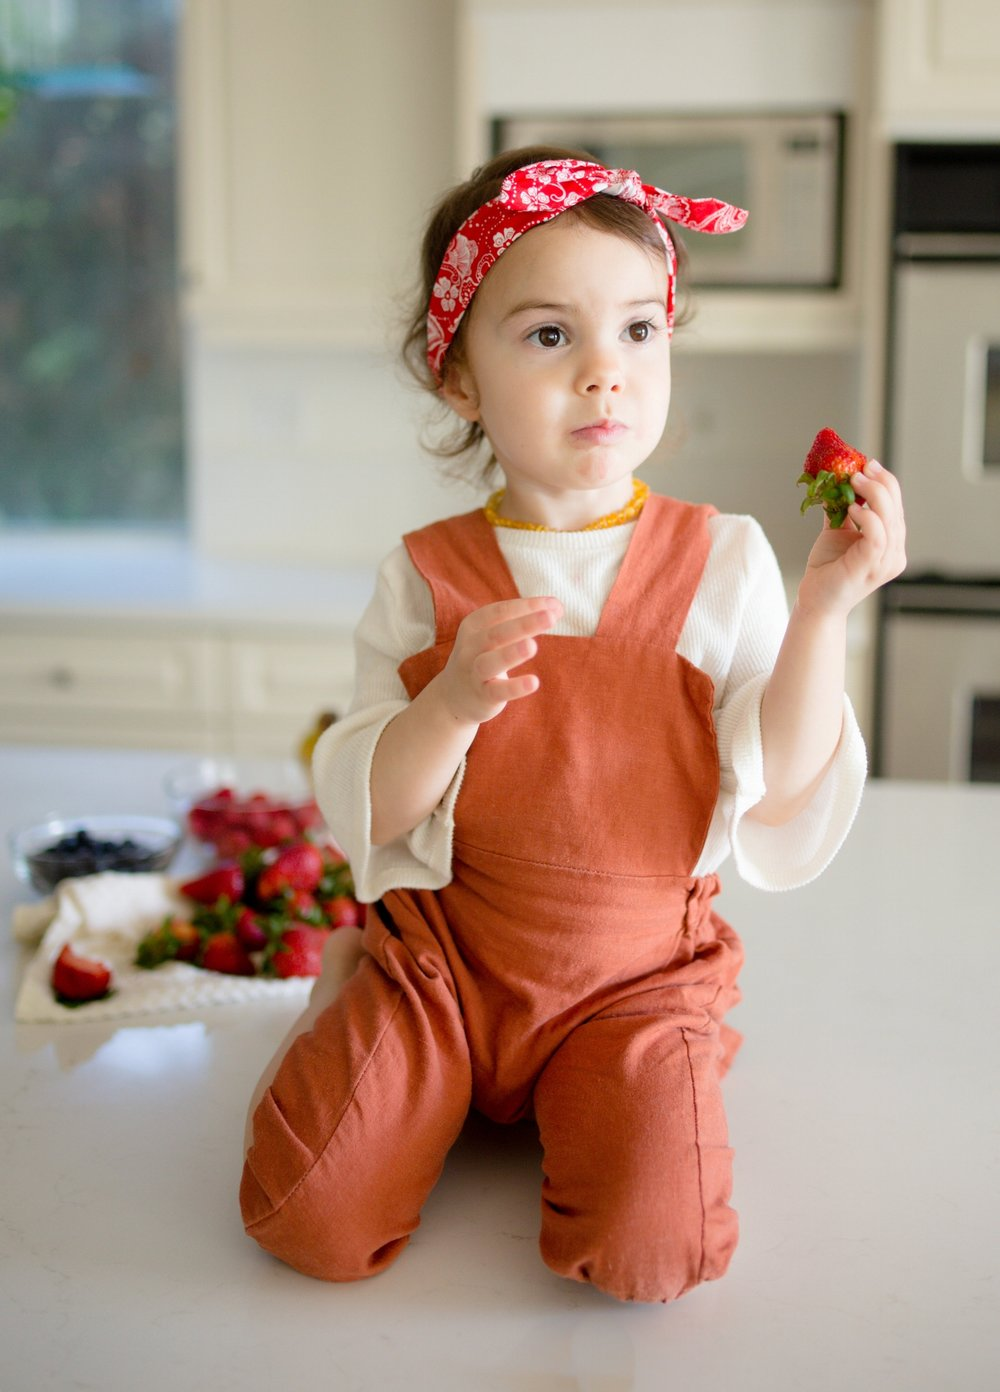 Toddler girl in rust jumpsuit eating fresh strawberries on kitchen counter